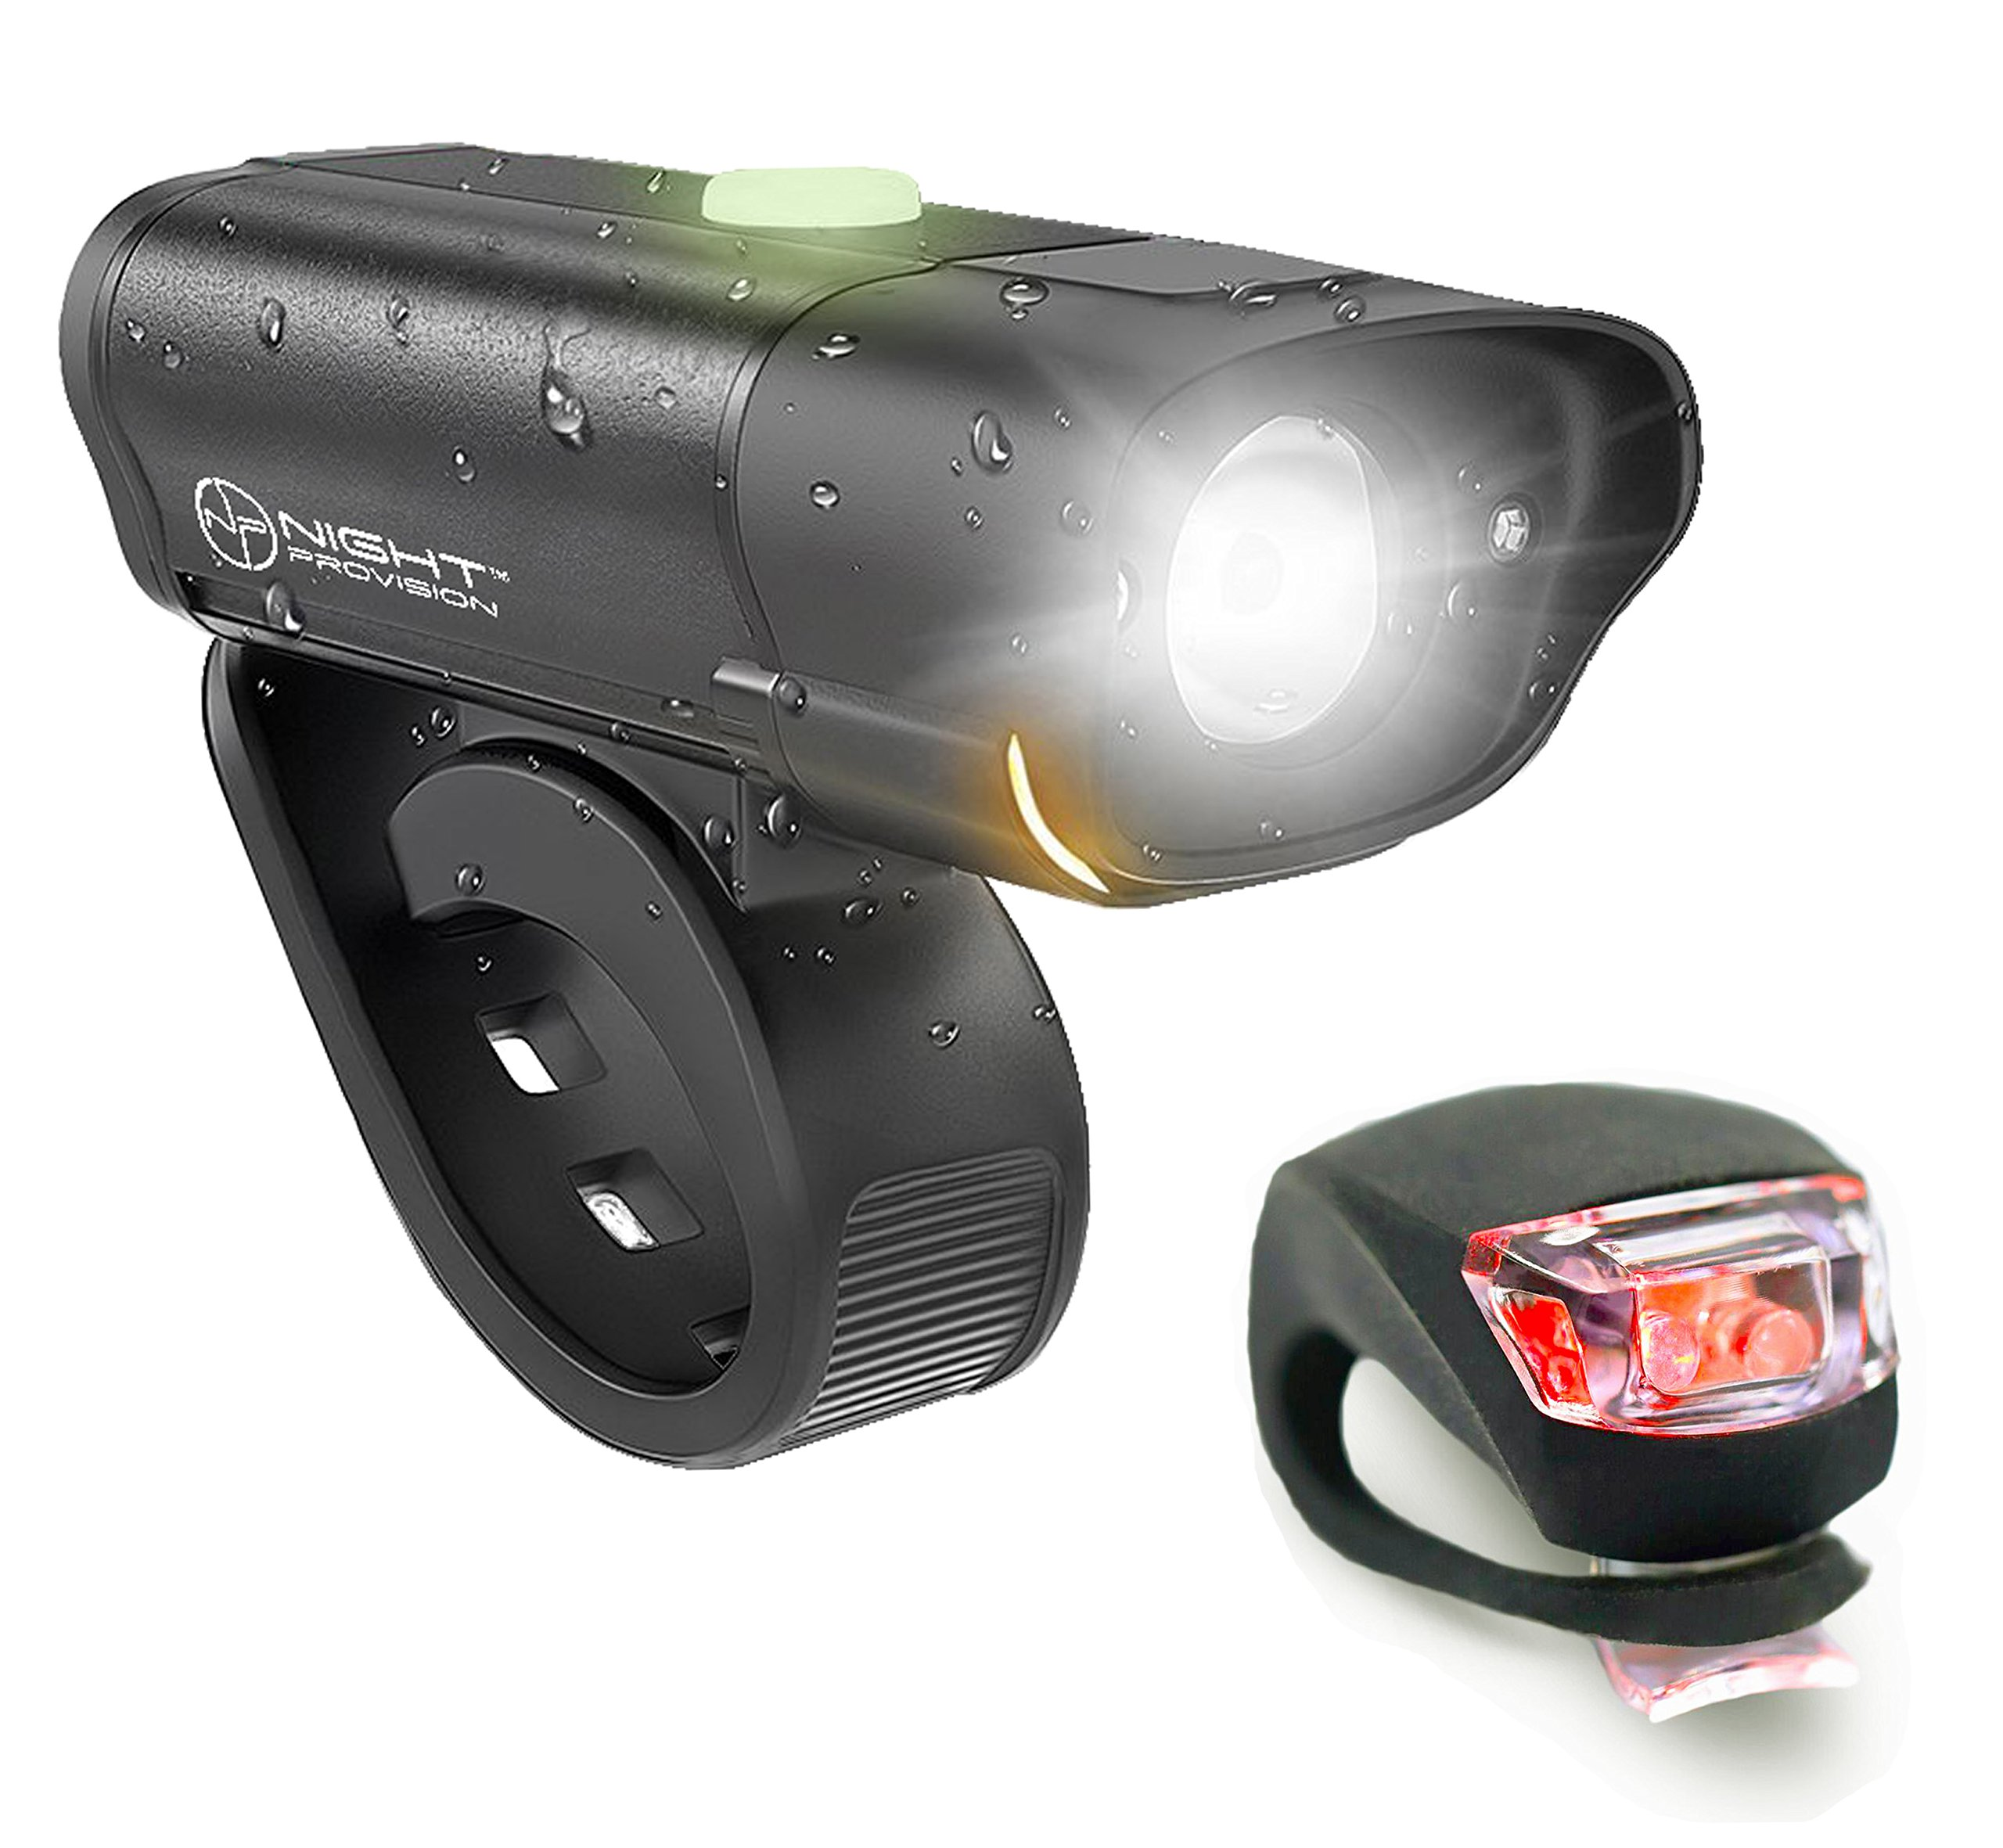 Night Provision POWERFUL BX-300 CREE L2 Bike Light Set USB Rechargeable Front Headlight w/Amber Side Alert + Bonus Free Rear LED Bike Light